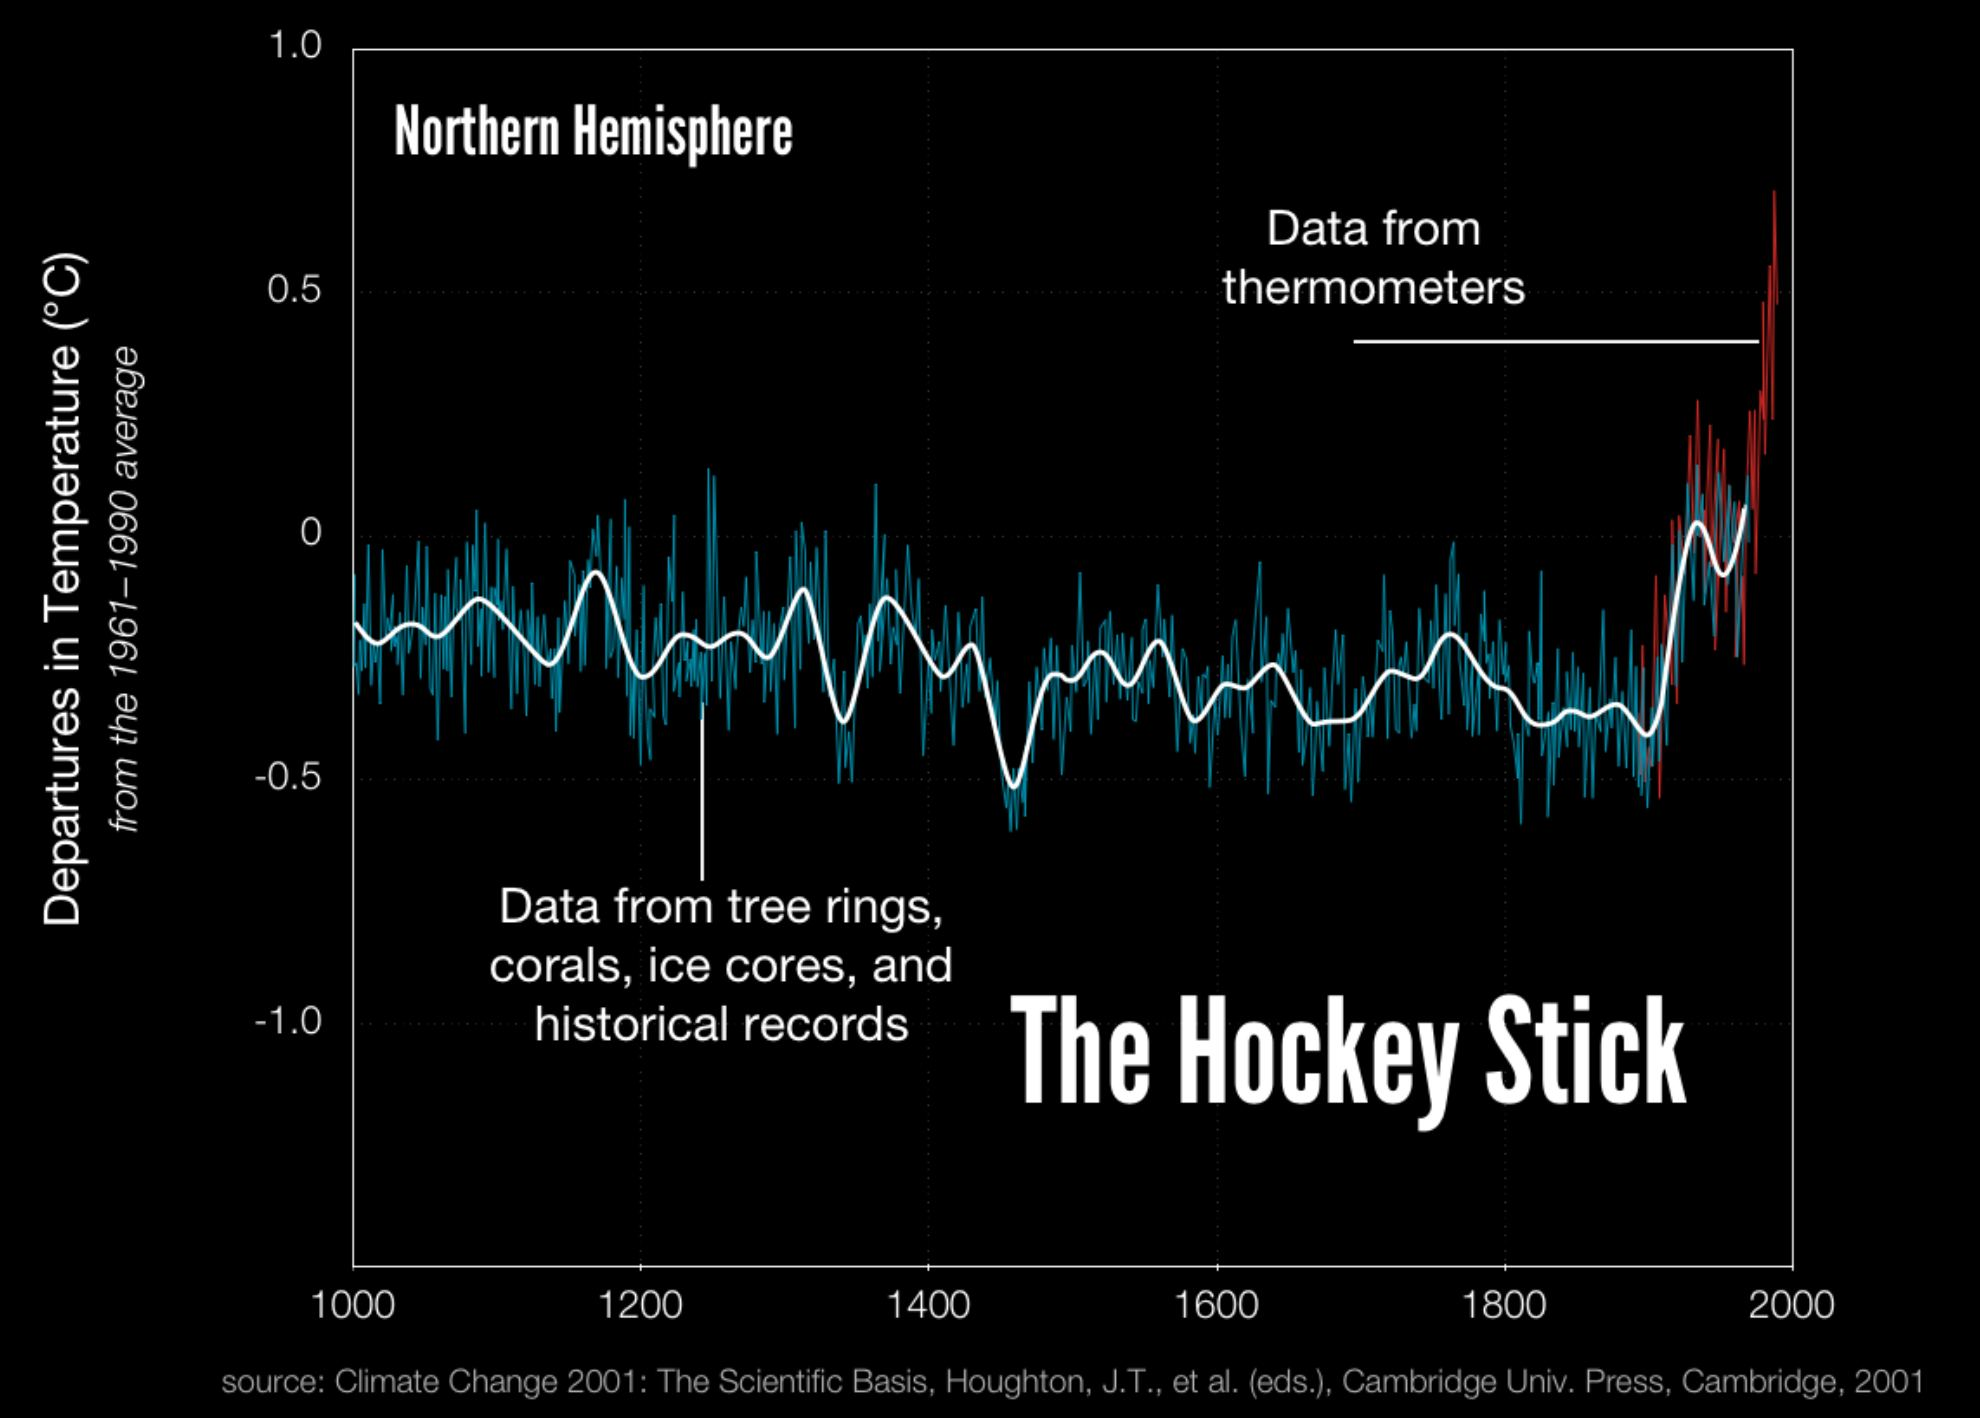 The hockey-stick graph